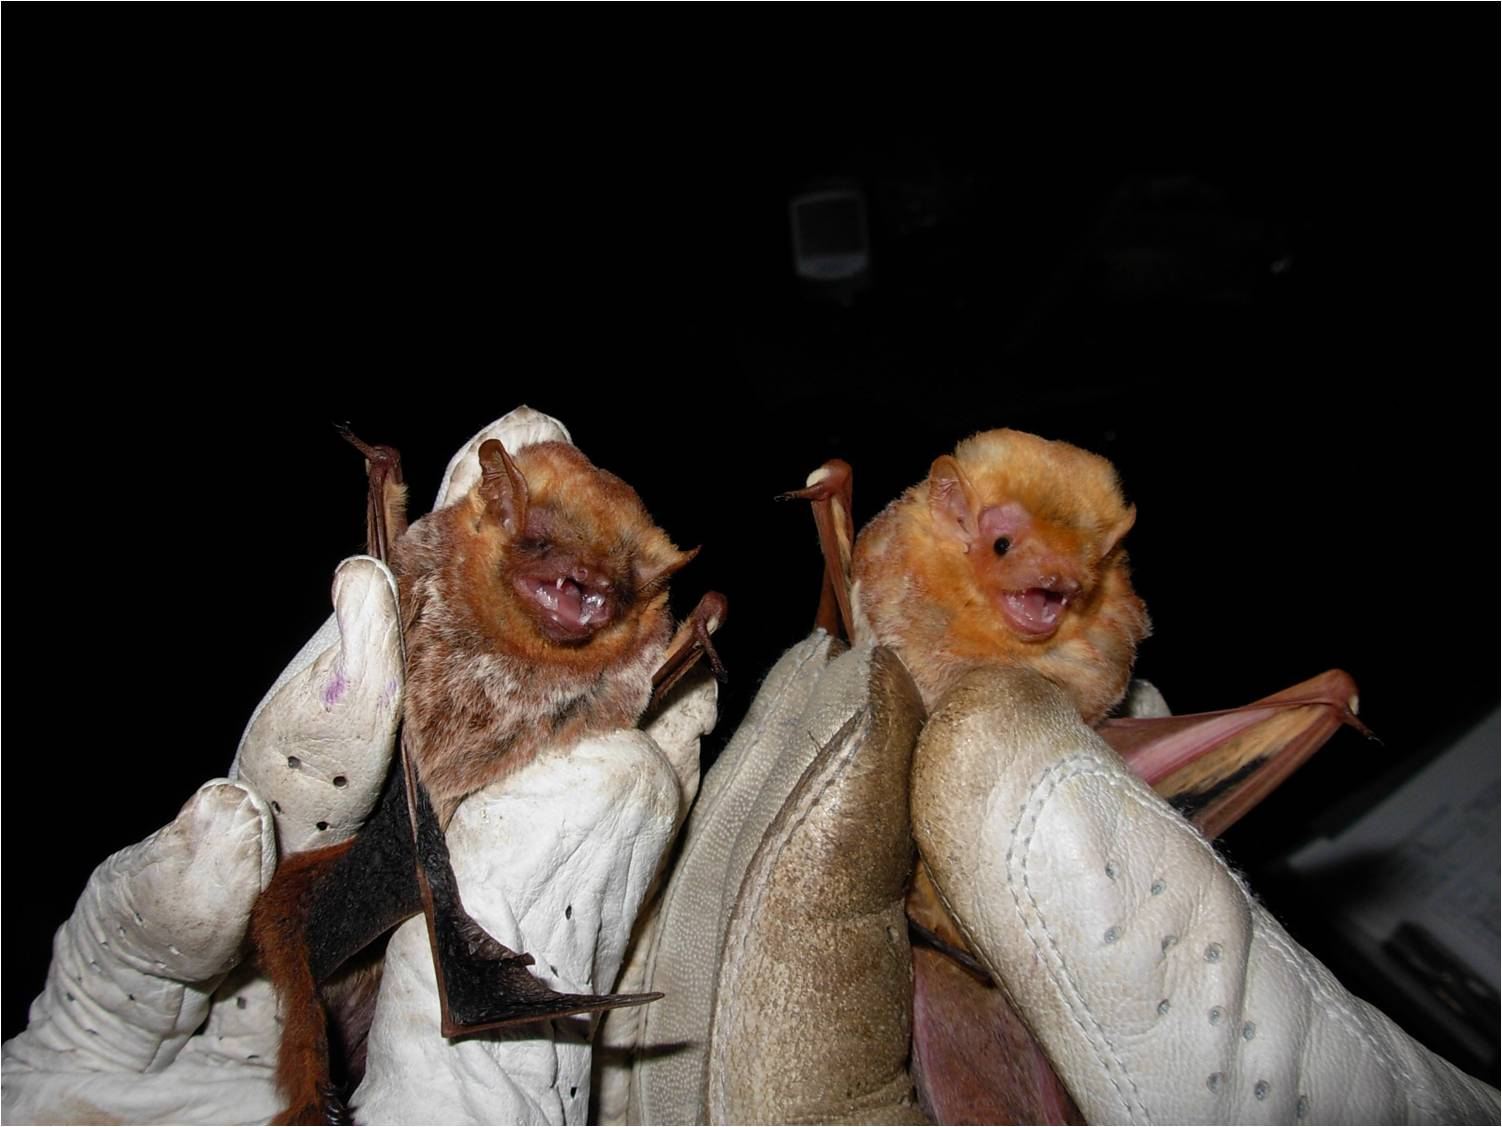 Night Moves Biologists Work To Dispel Fears Preserve